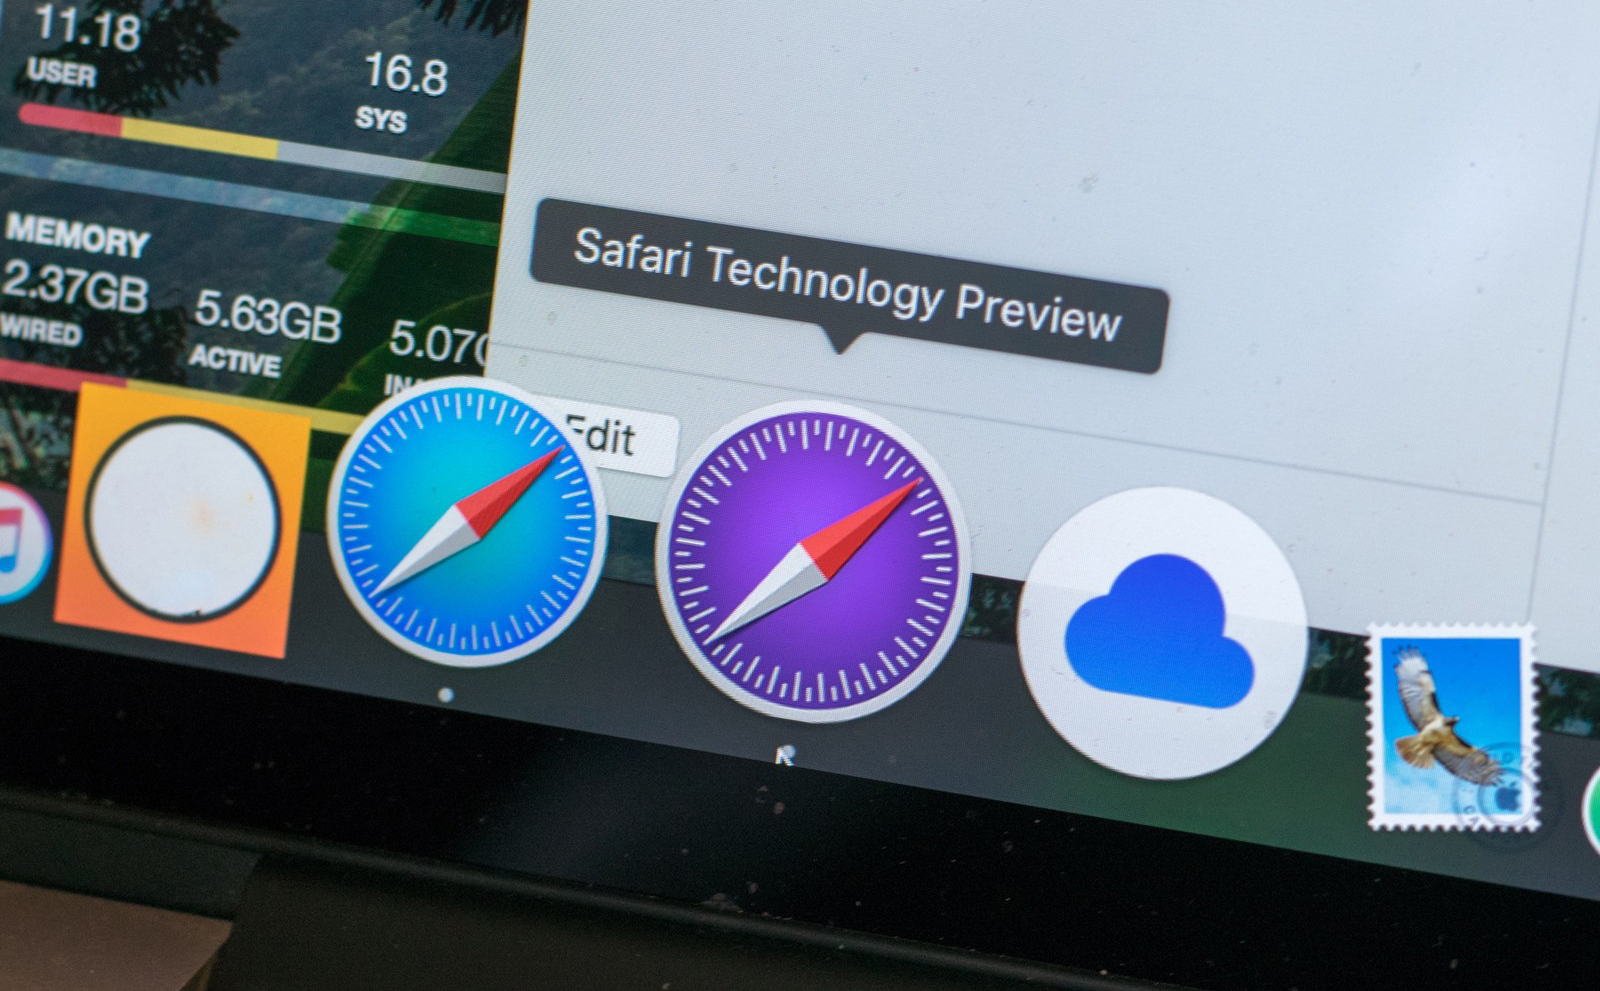 Safari Technology Preview 58